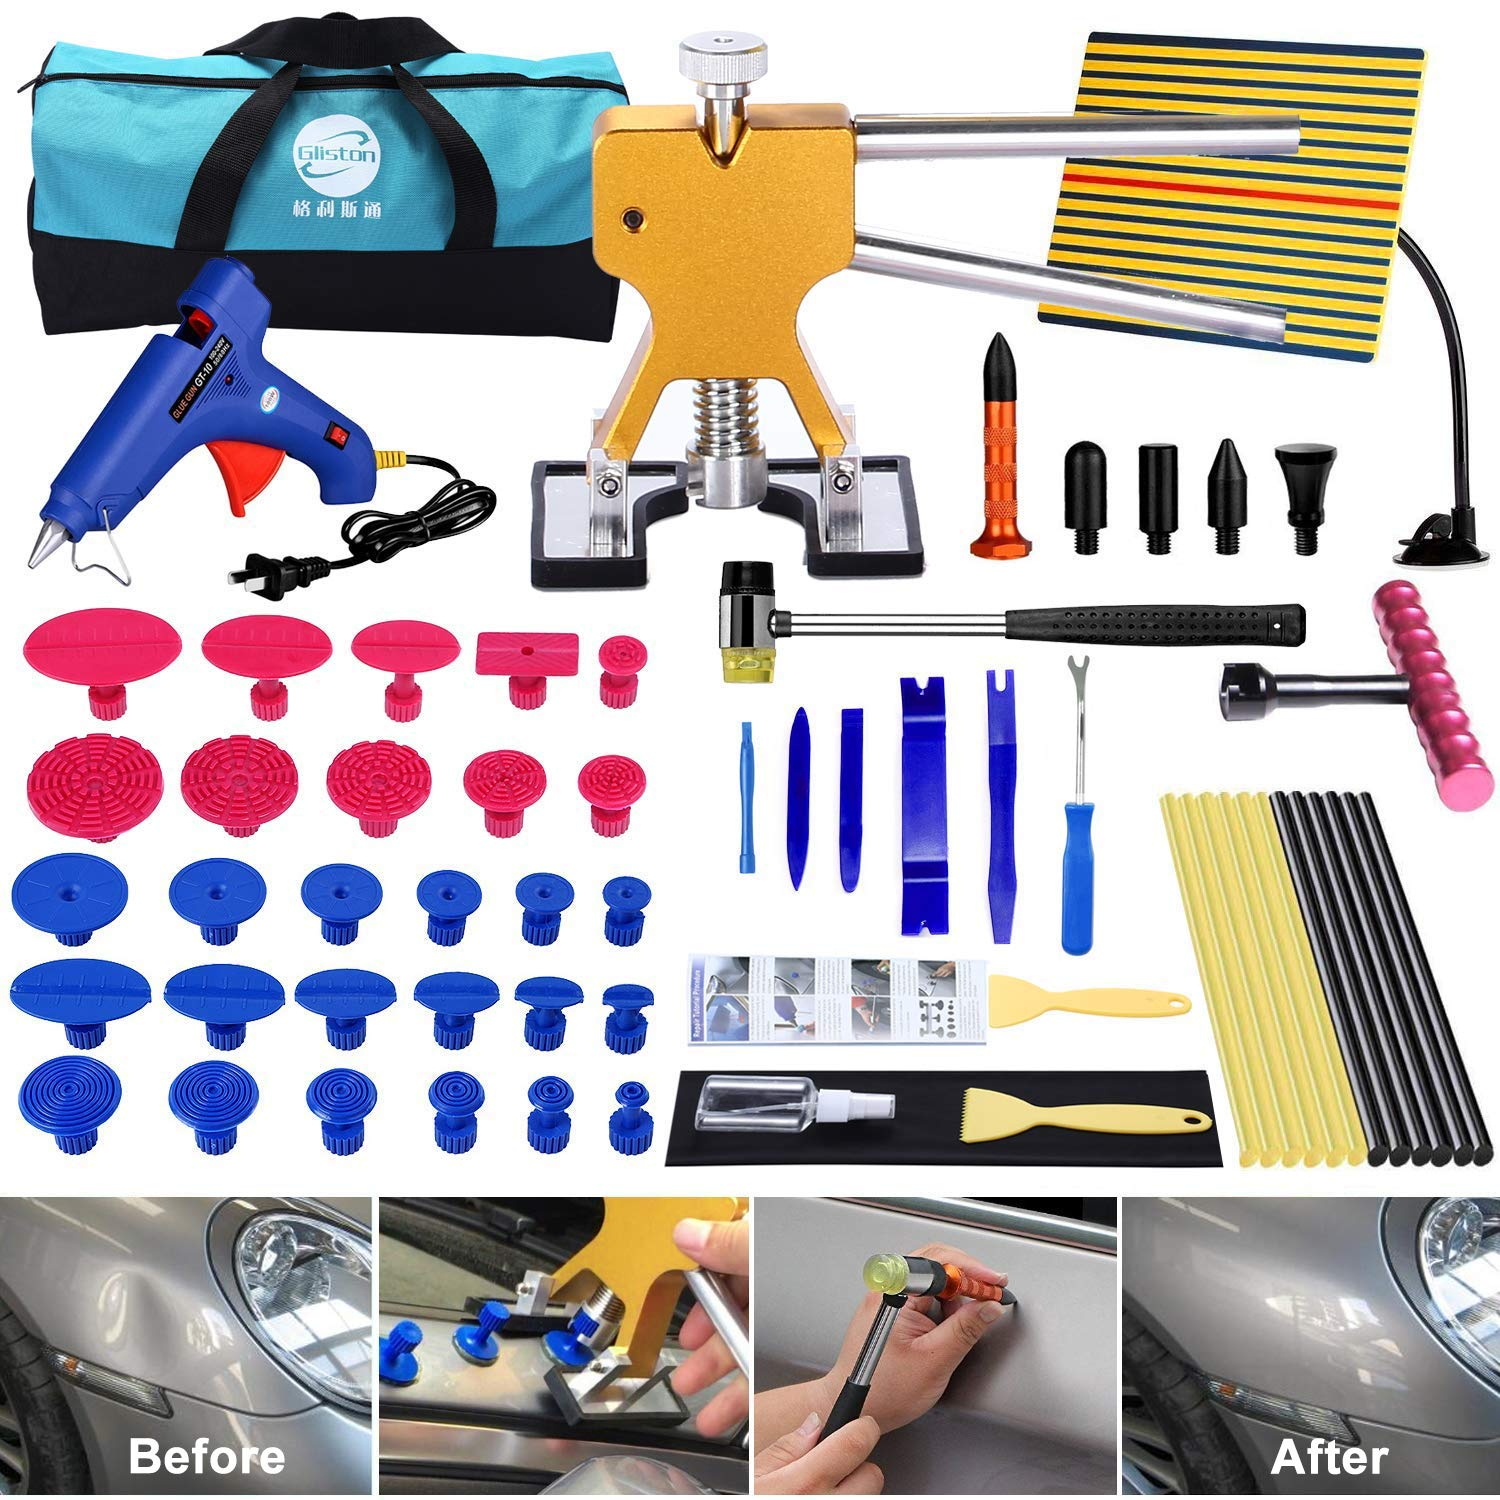 YOOHE 59 PCS Auto Body Paintless Dent Repair Tool Kits – Gold Dent Lifter Dent Puller Kit with LED Light Line Board for Car Dent Removal and Hail Damage by Yoohe (Image #7)